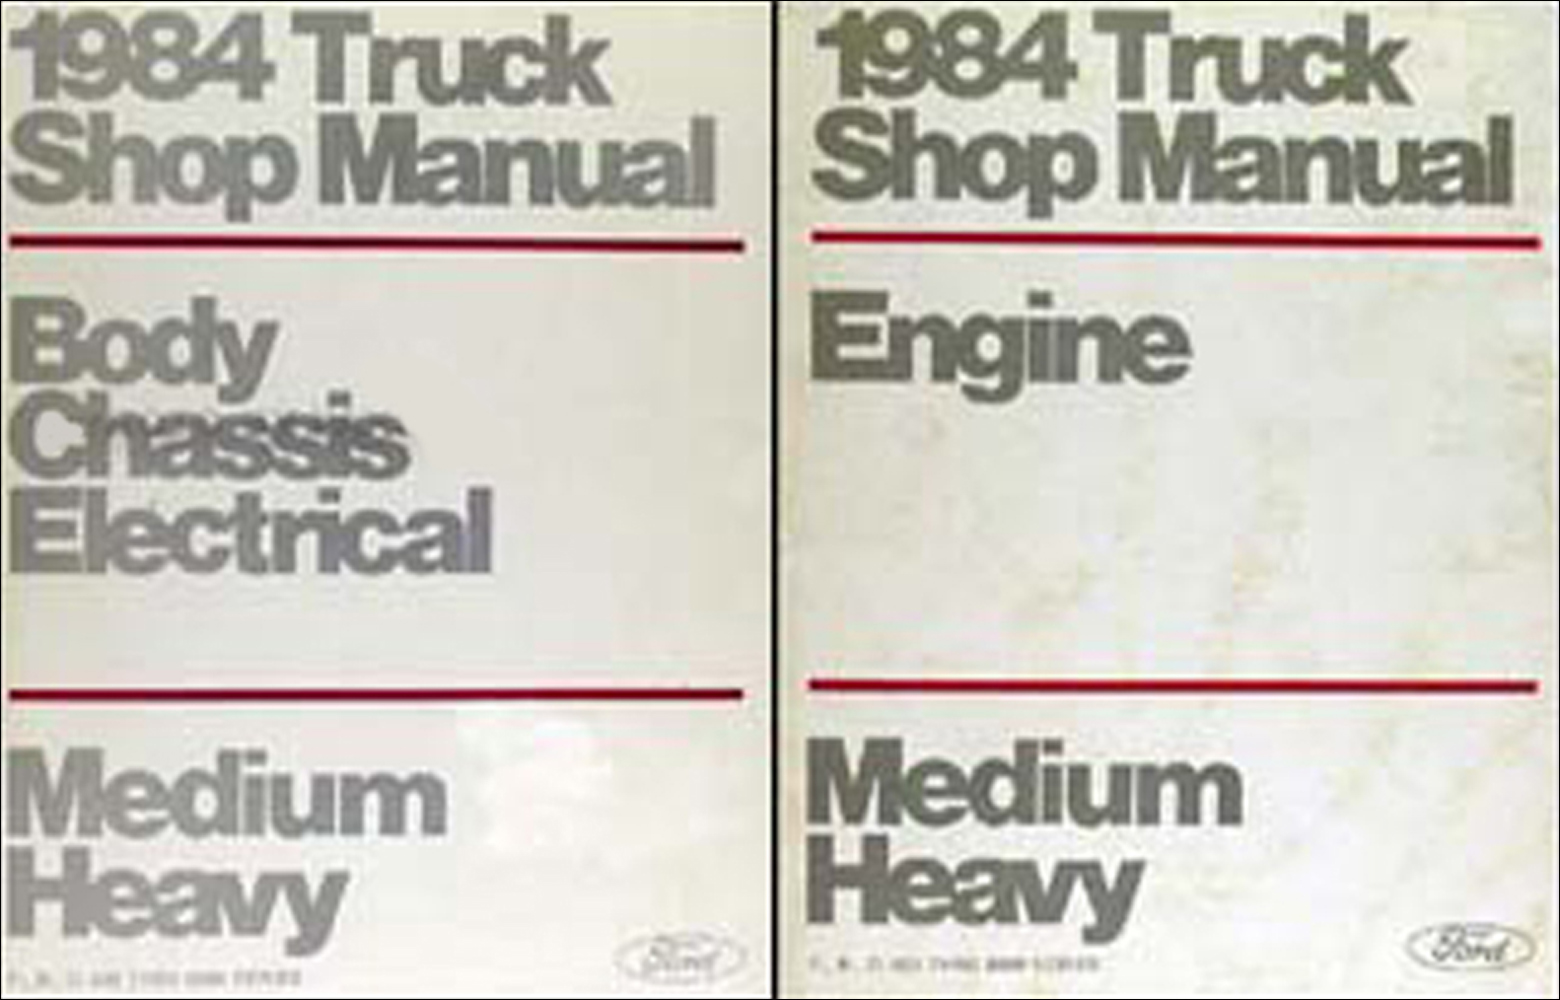 1984 ford f b c 600-8000 medium/heavy truck repair shop manual set original